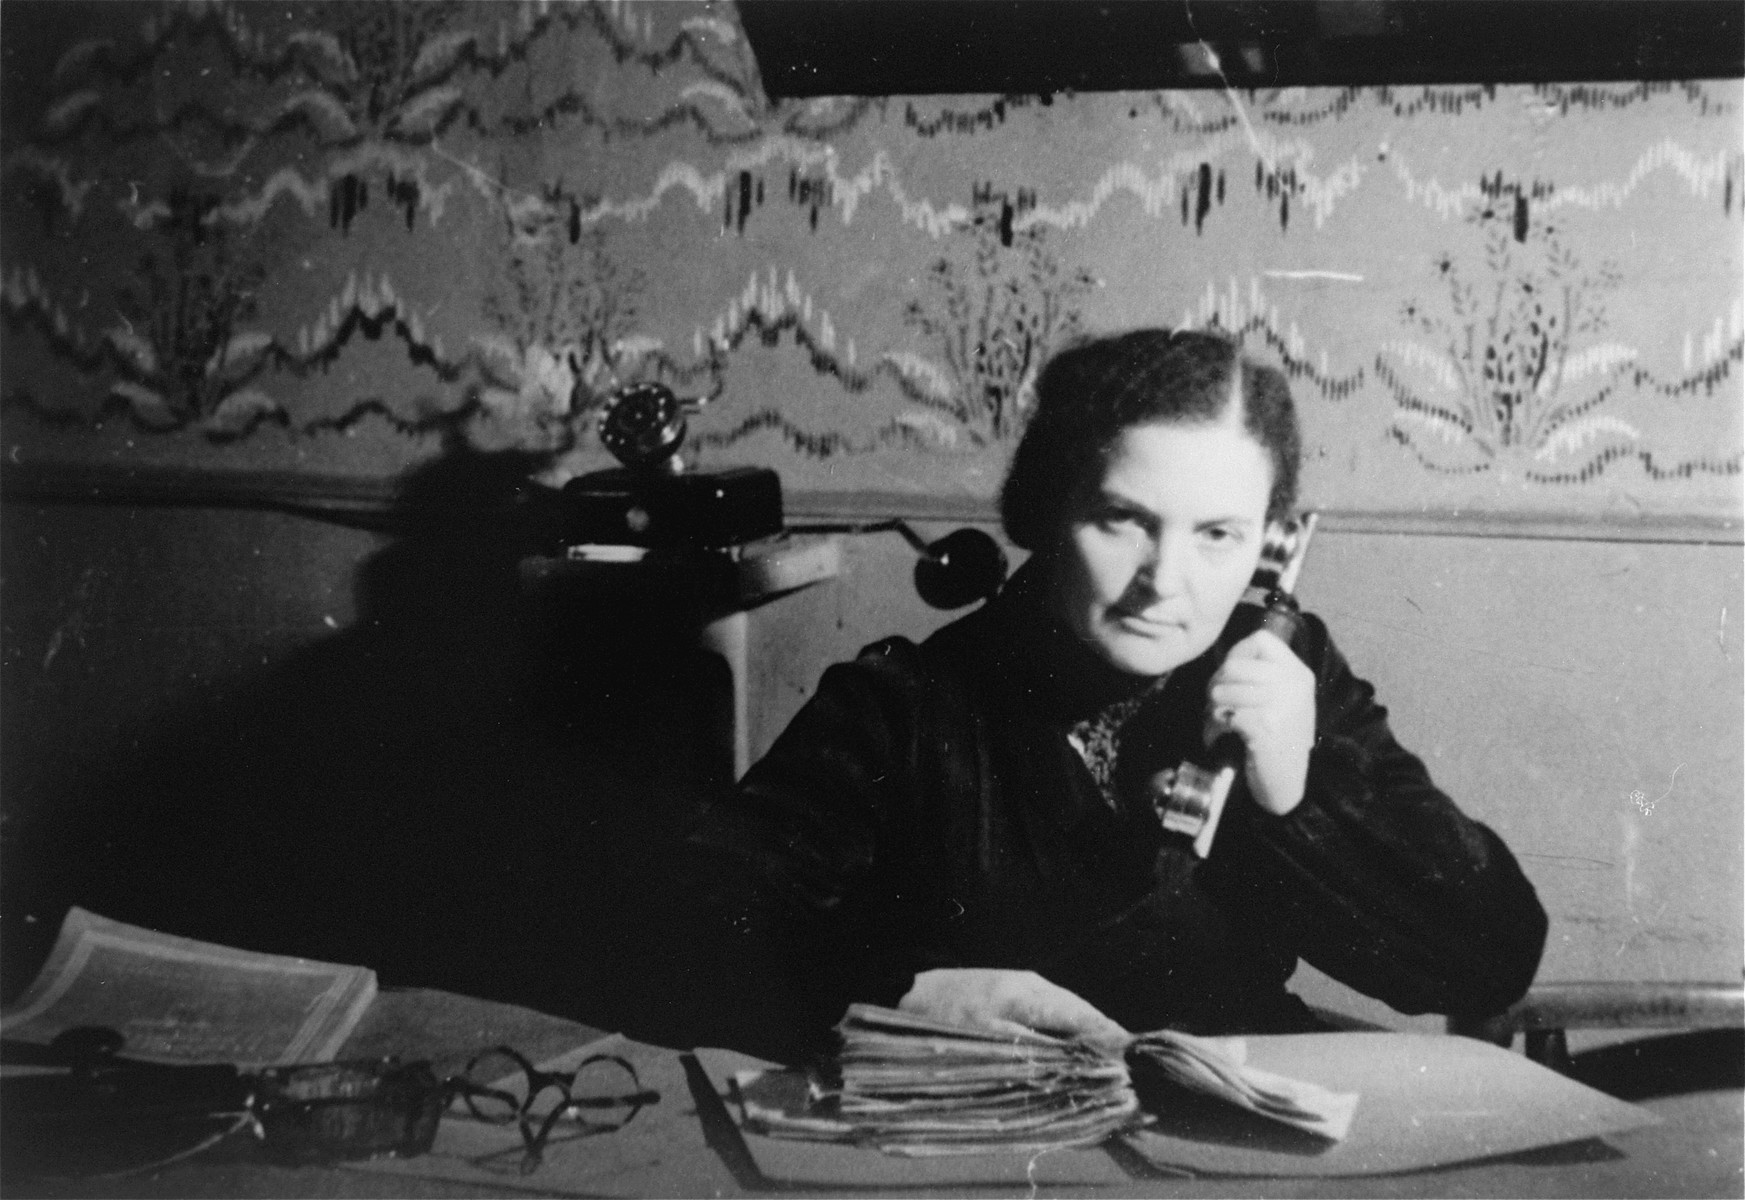 A female member of the ghetto administration sits at a desk in the office of the Judenrat in the Kielce ghetto.  This photo was one the images included in an official album prepared by the Judenrat of the Kielce ghetto in 1942.